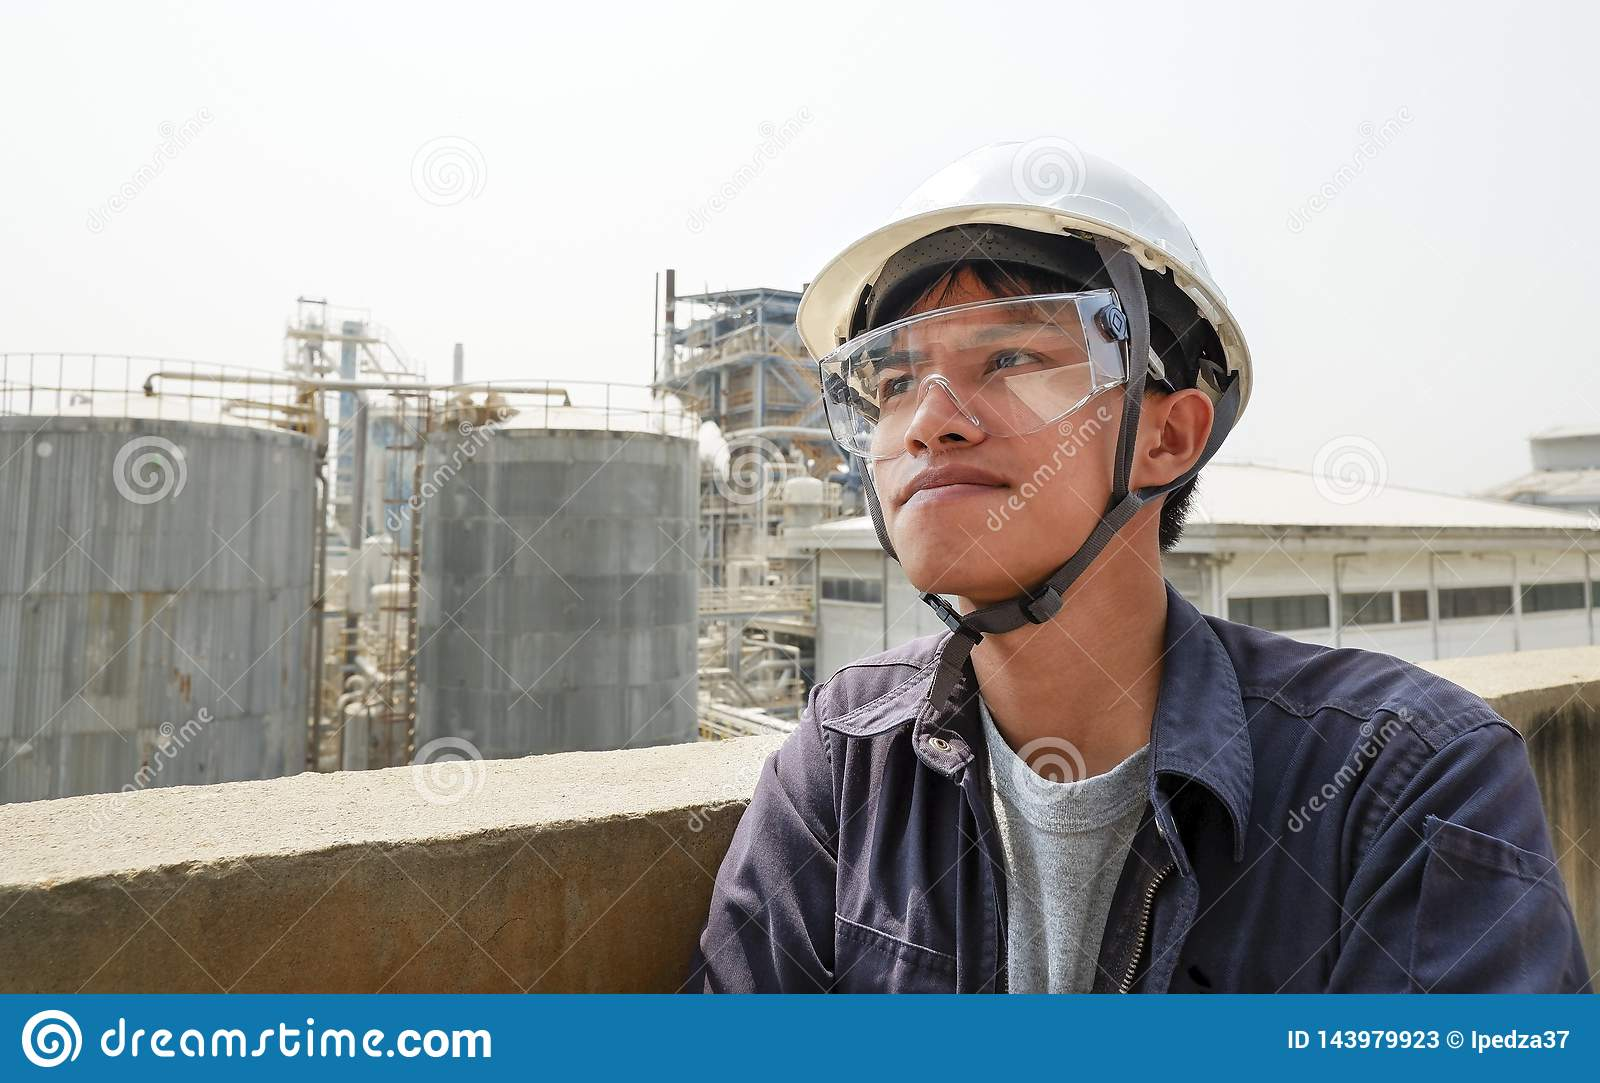 Asian guy Wearing a helmet Working in a large industrial factory Checking the production process